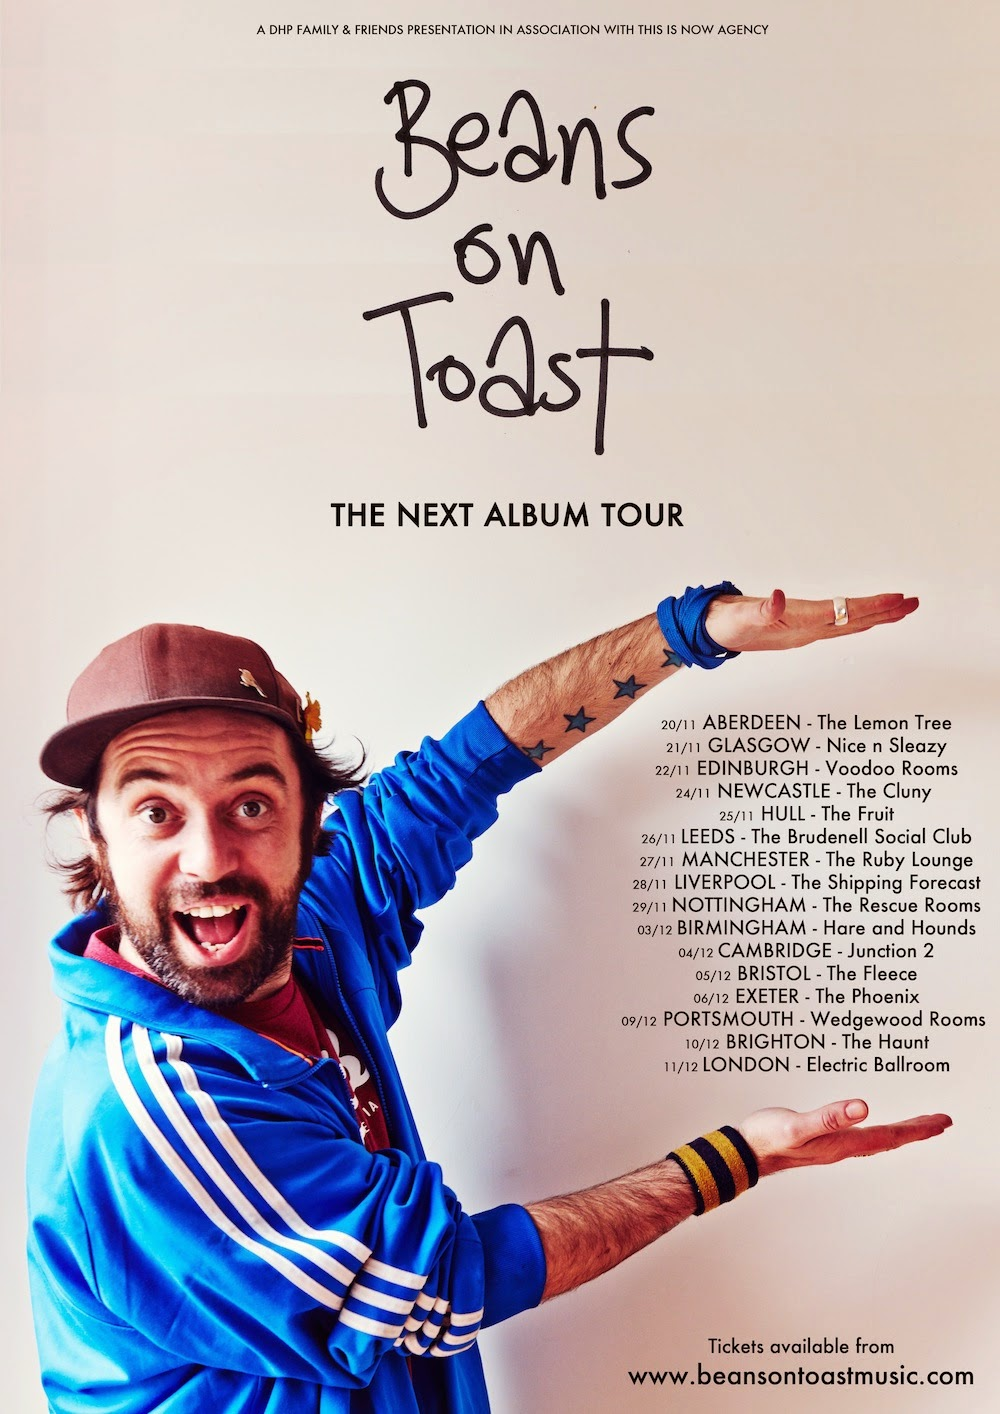 Beans on Toast The Next Album Tour 2014